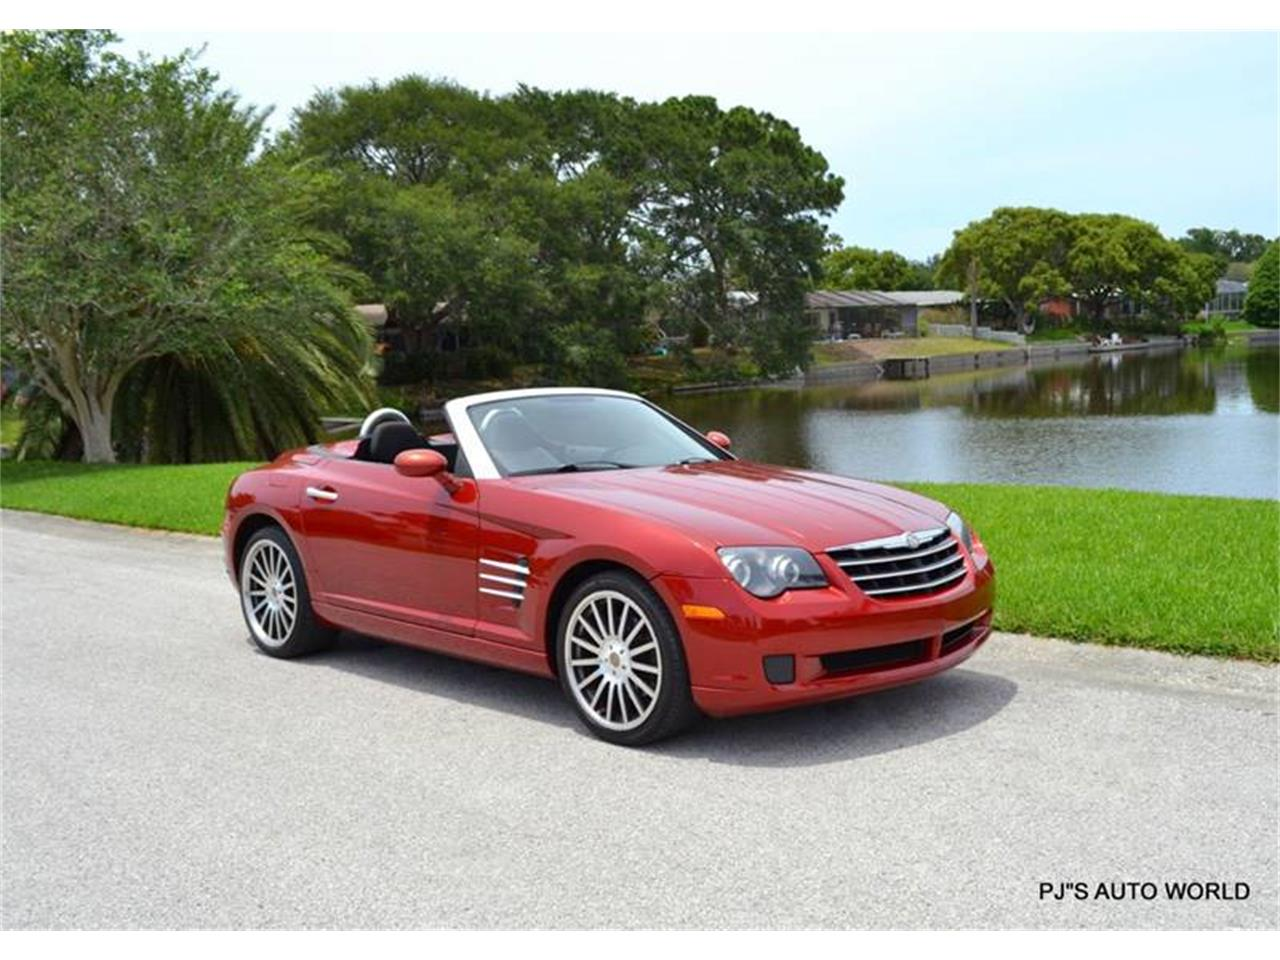 Large Picture of 2005 Crossfire located in Florida - $10,900.00 Offered by PJ's Auto World - L7XM